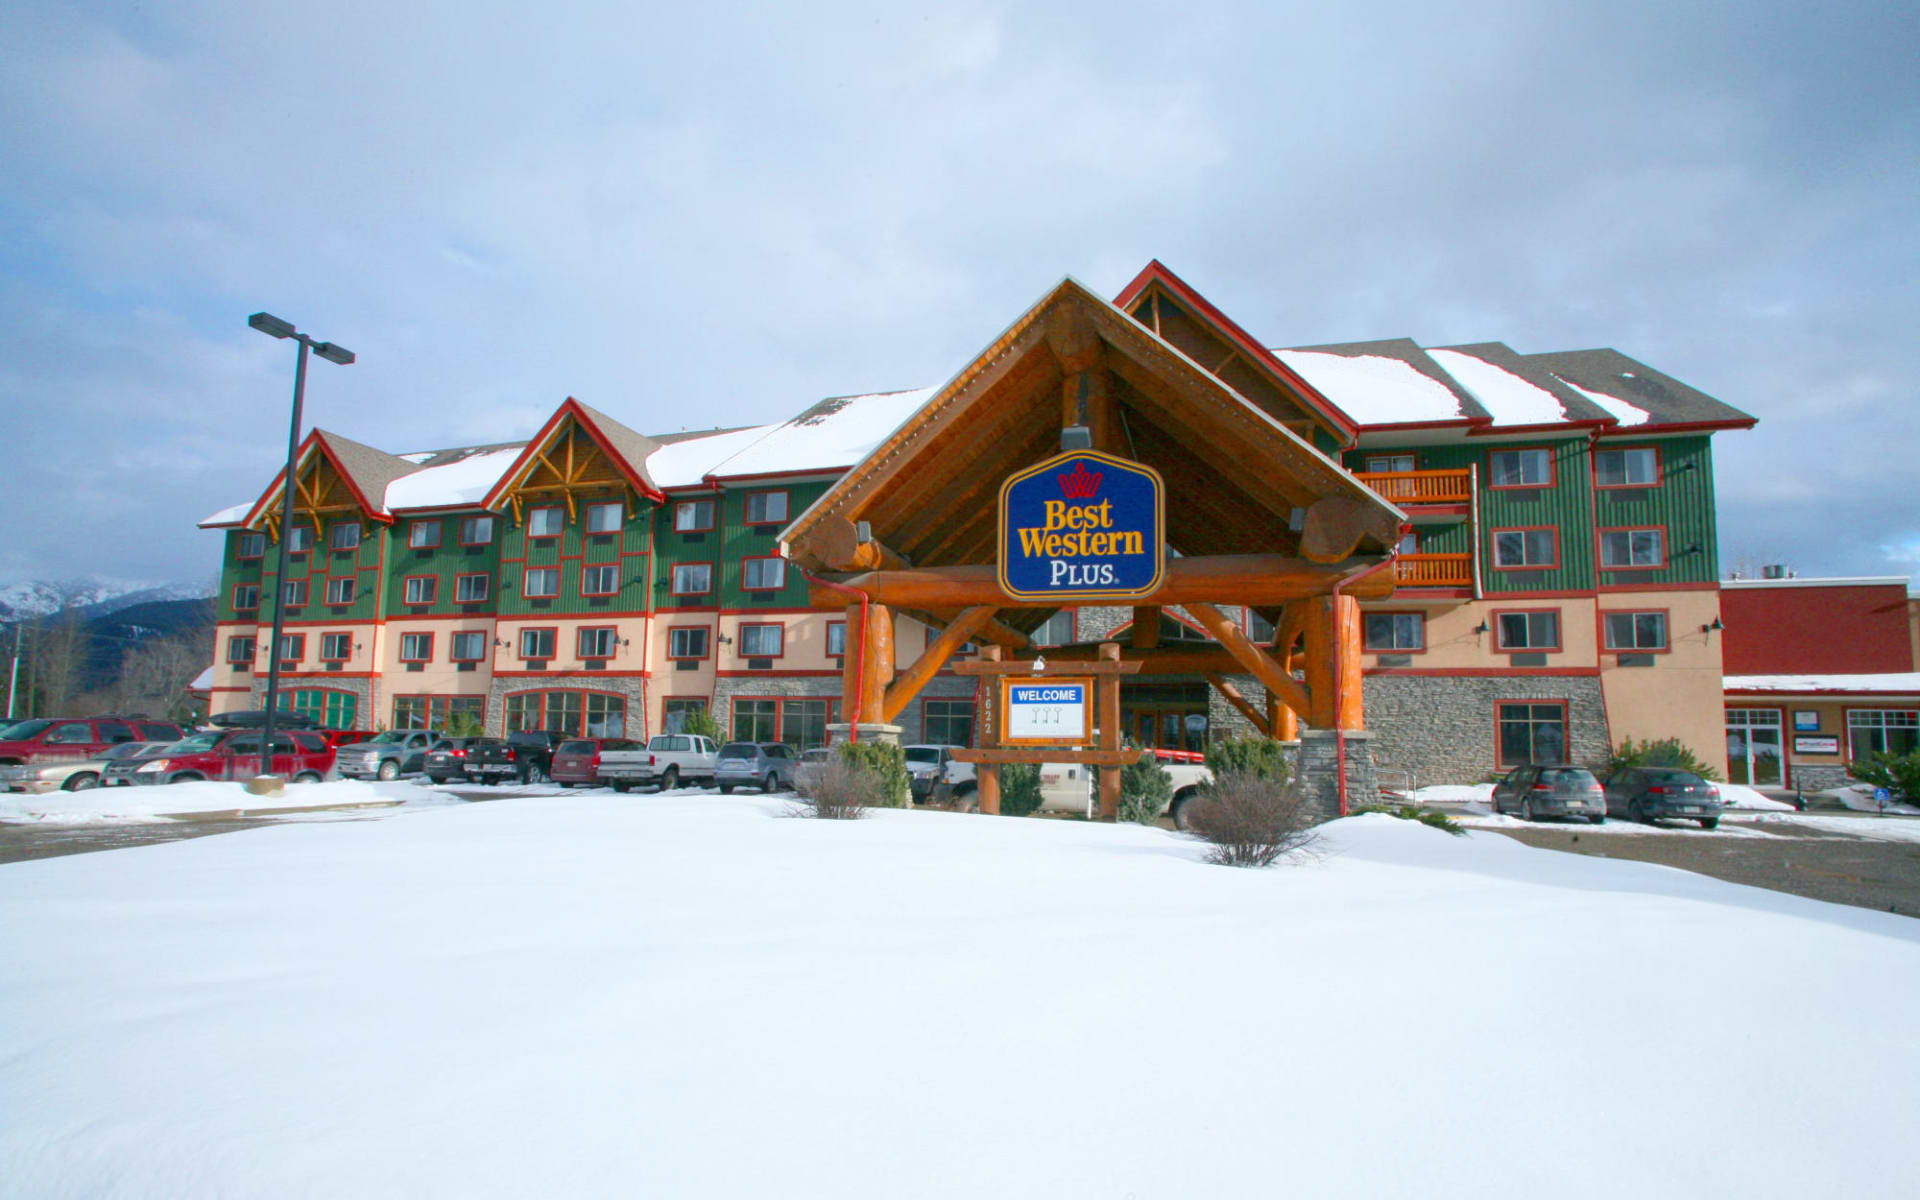 Best Western Plus Fernie Mountain Lodge:  Best Western Plus Fernie Mountain Lodge_Winter